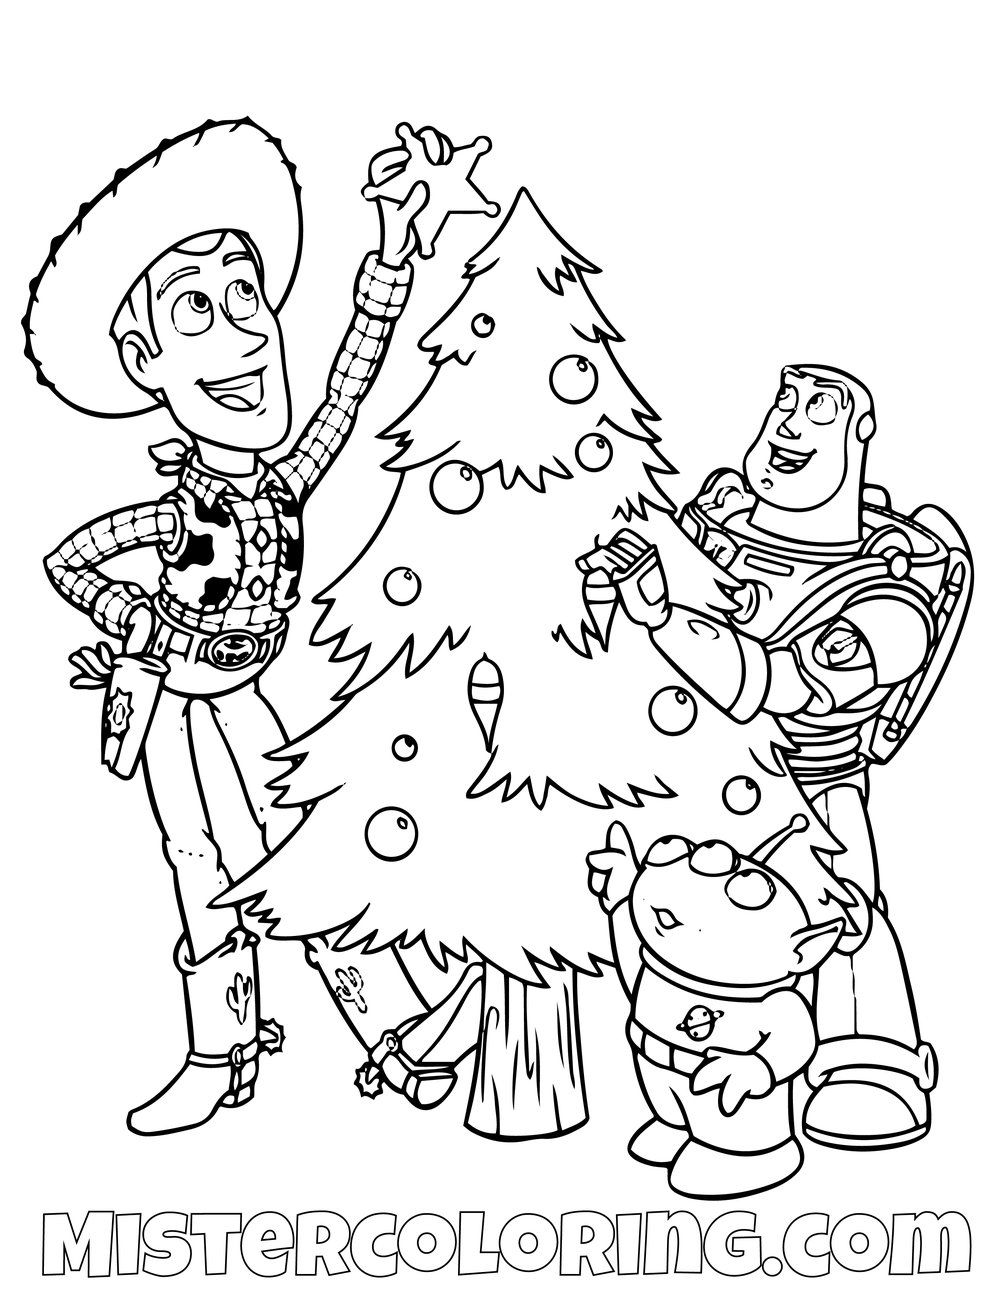 Free Printable Toy Story Coloring Pages For Kids Toy Story Coloring Pages Cartoon Coloring Pages Disney Coloring Pages